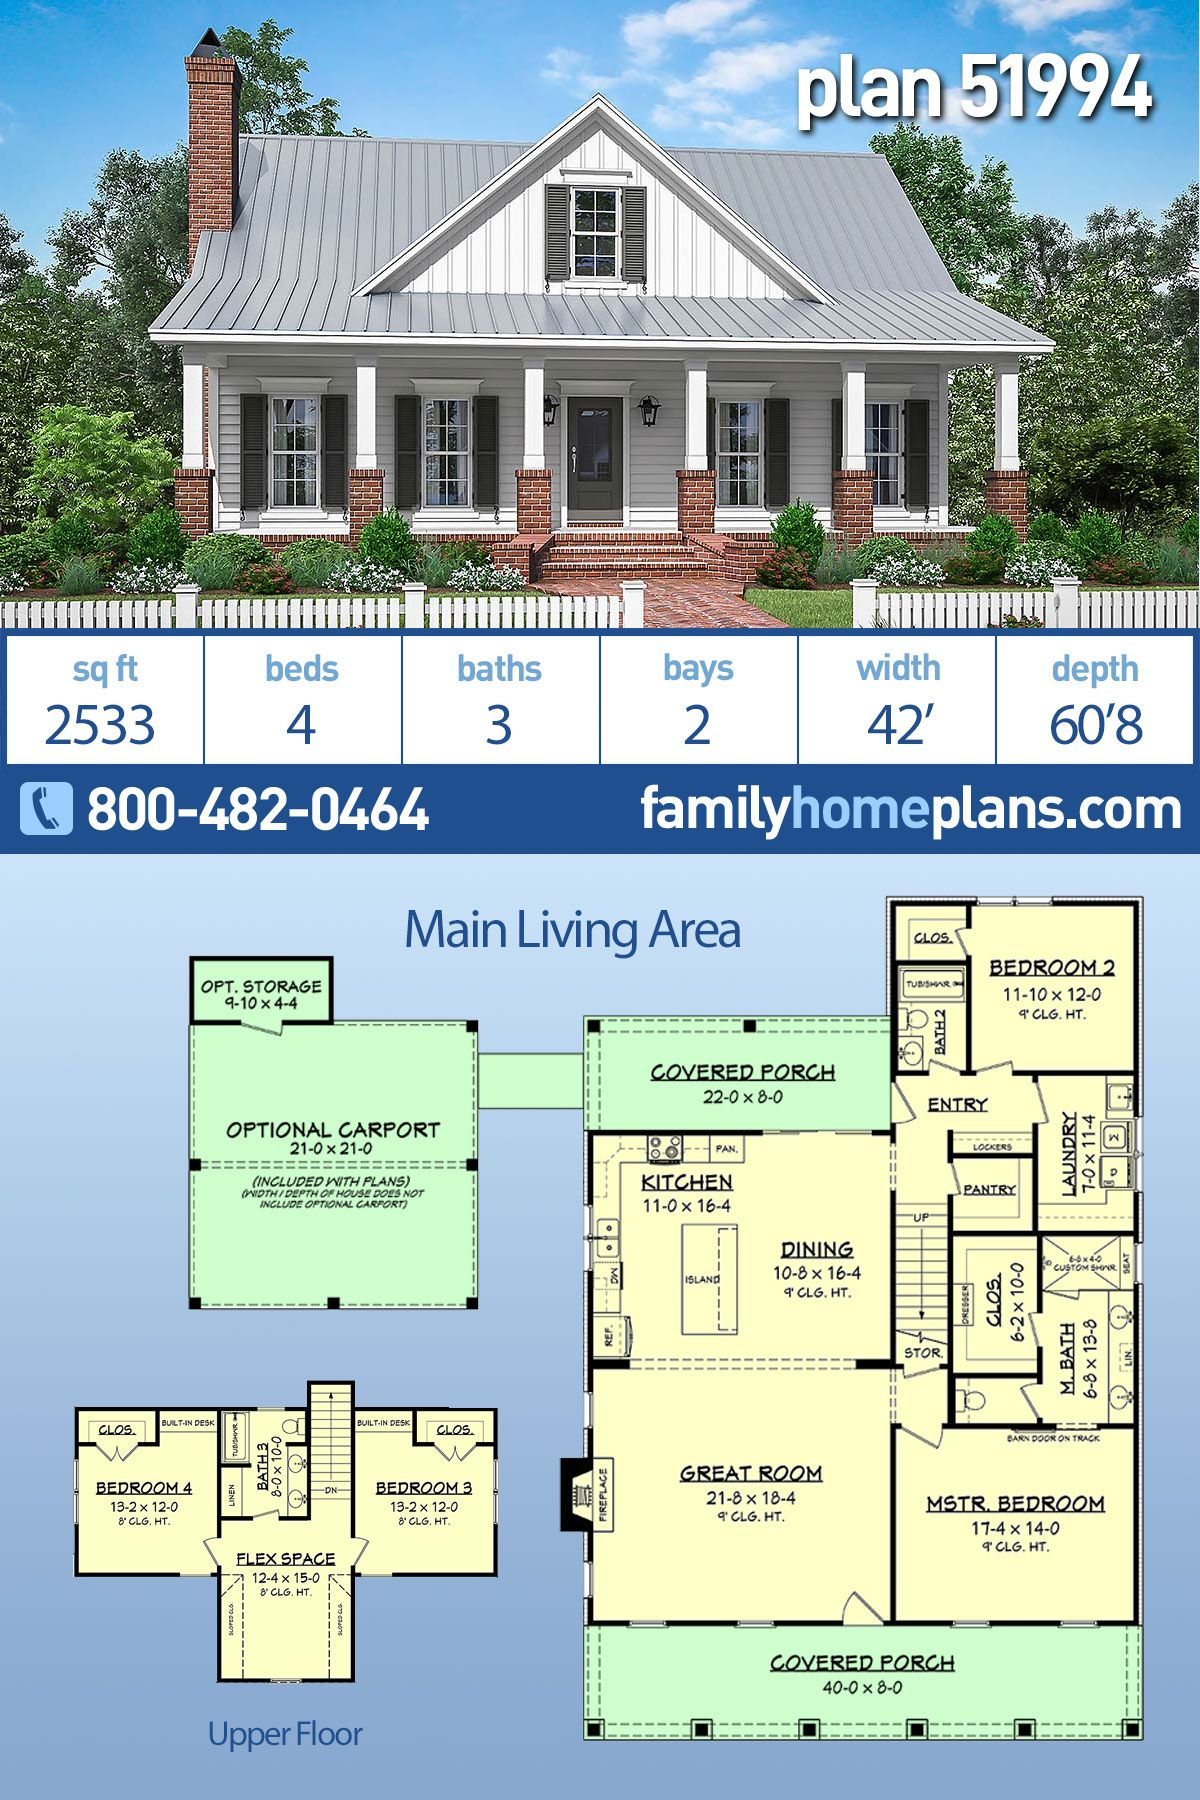 Traditional Style House Plan 51994 With 4 Bed 3 Bath 2 Car Garage Country House Plan Family House Plans House Plans Farmhouse